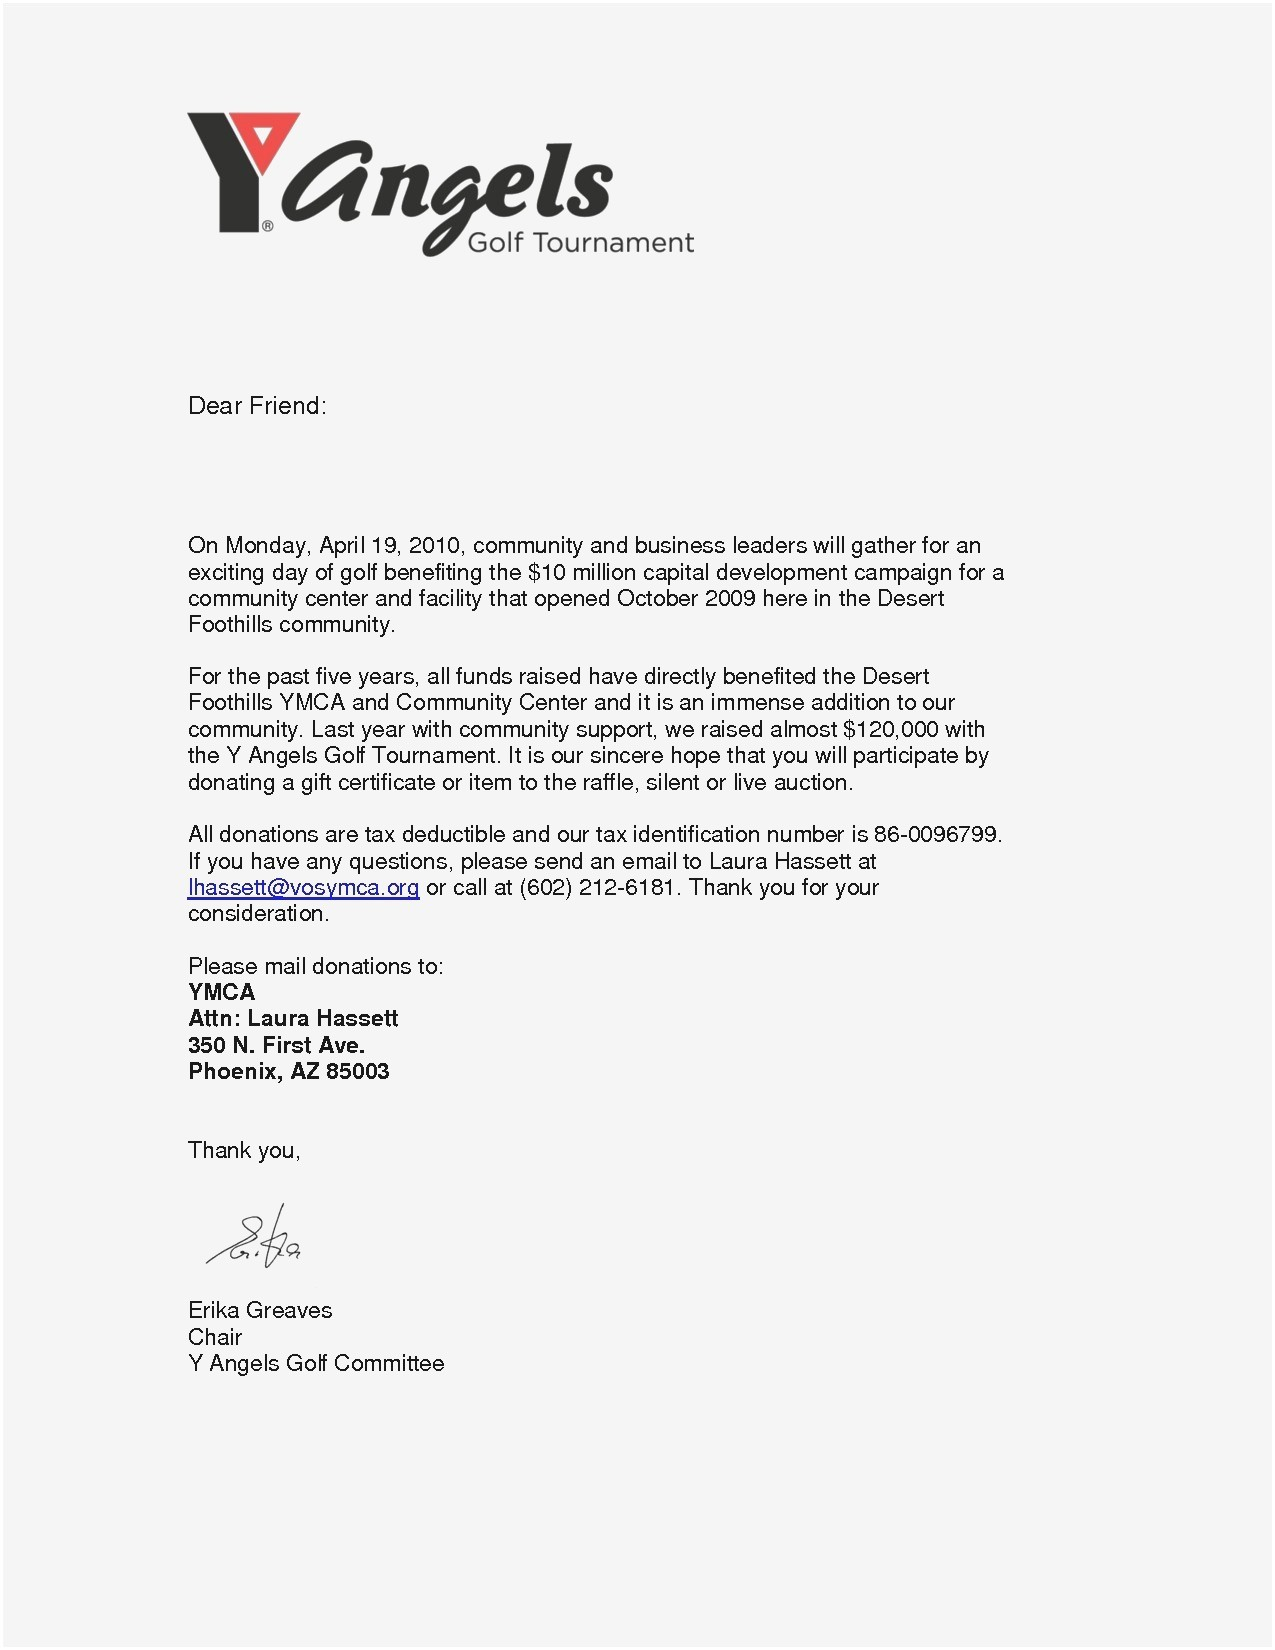 Golf tournament donation letter template collection letter templates golf tournament donation letter template donation request letter template altavistaventures Choice Image